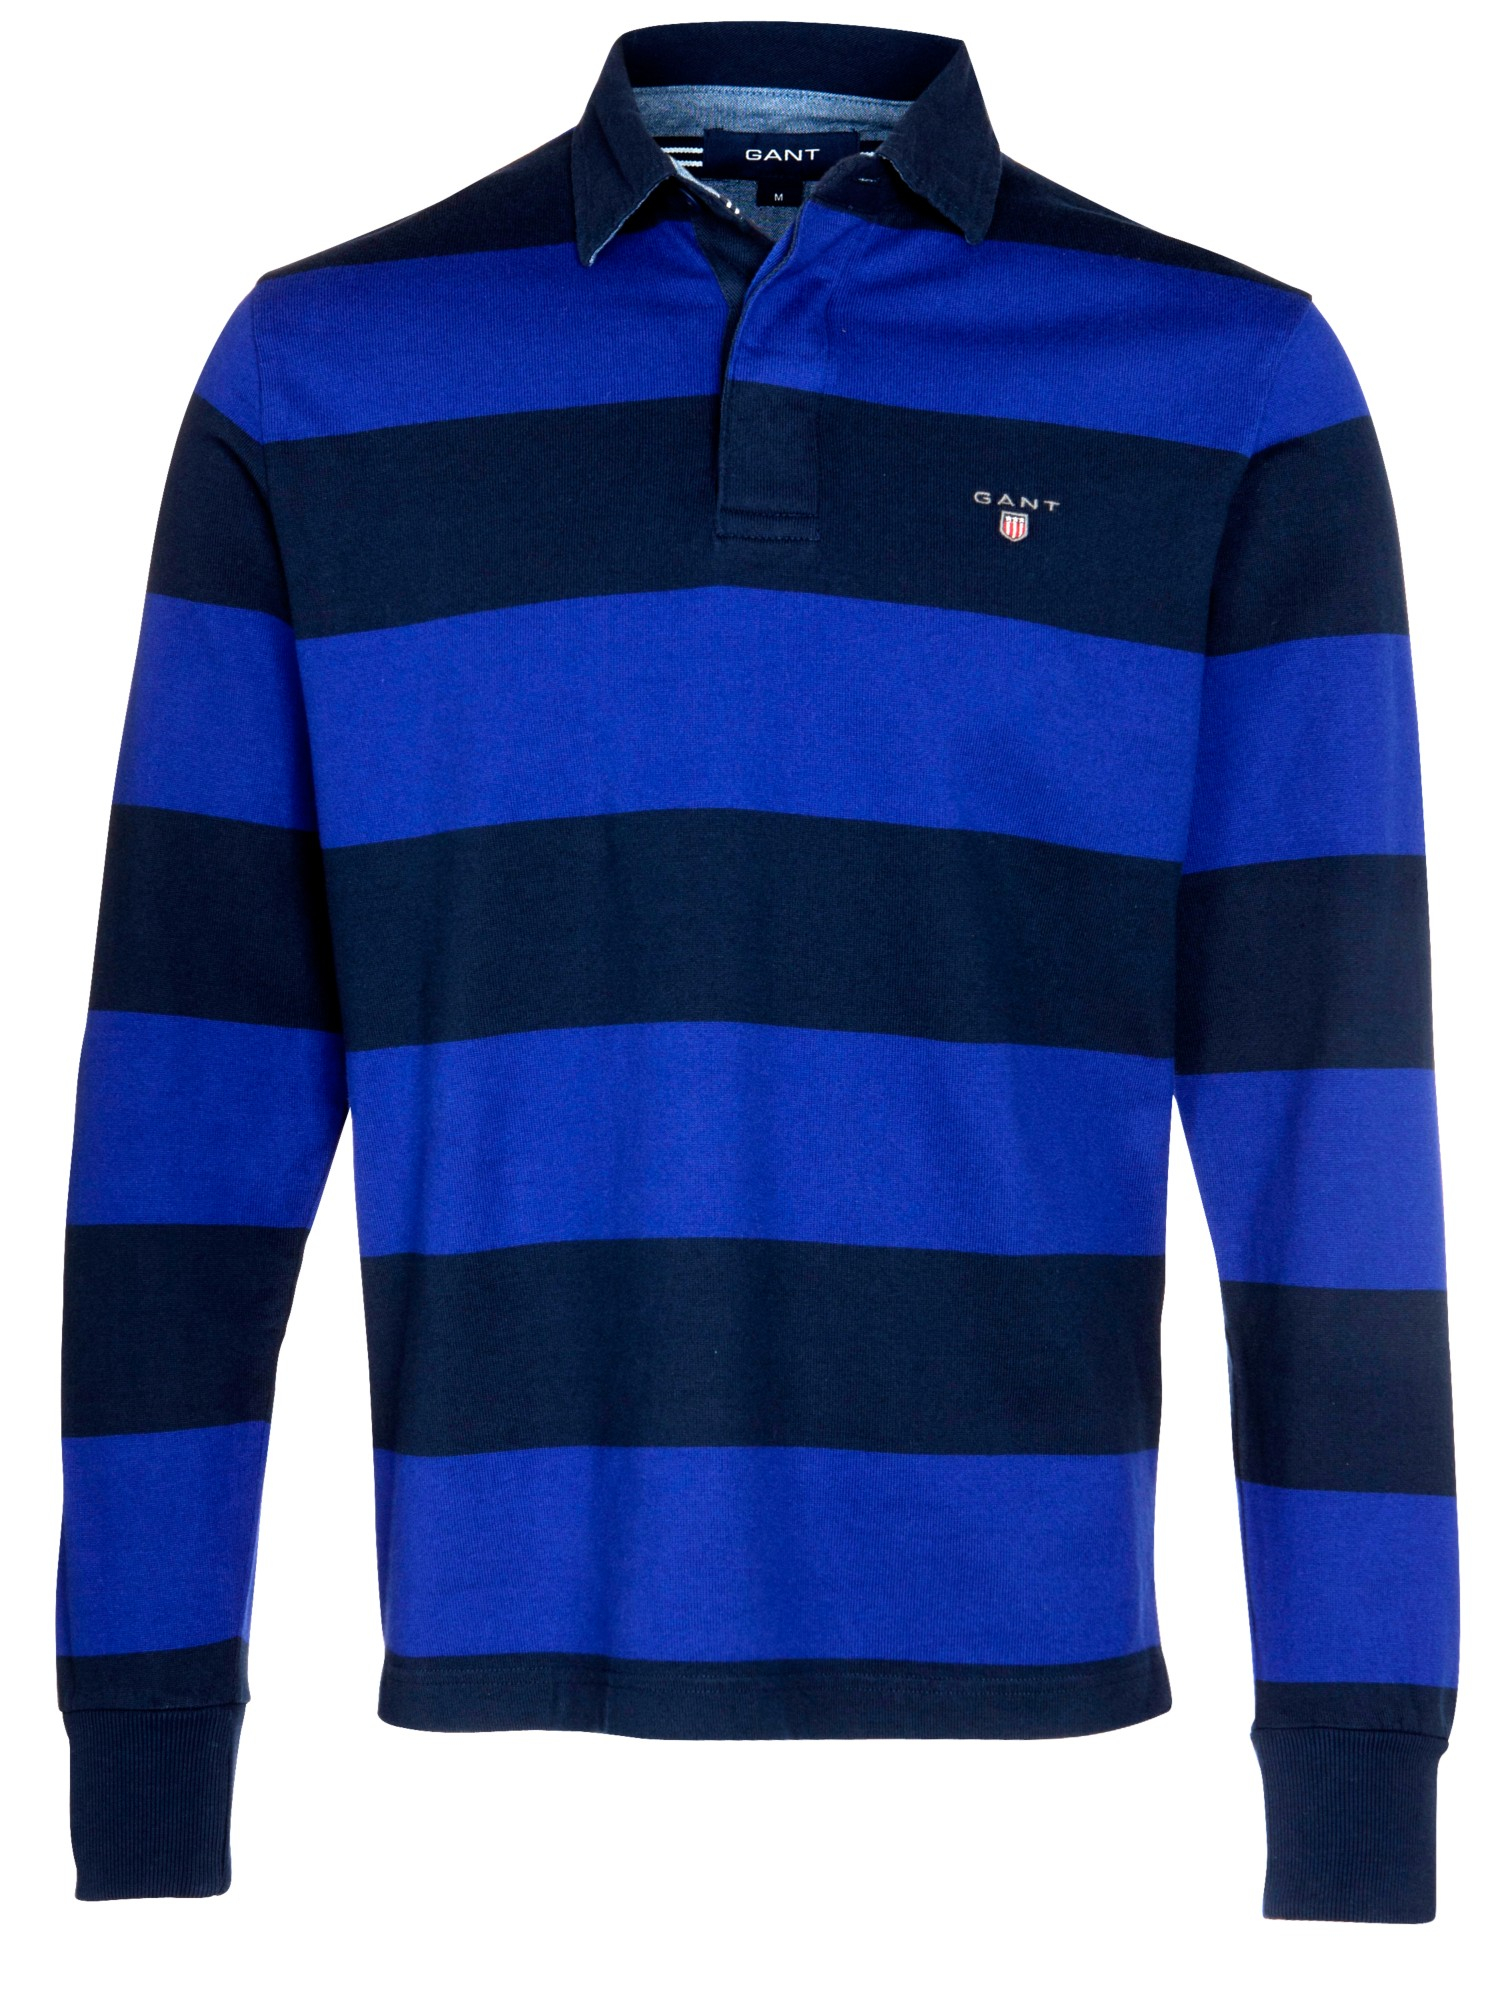 Long Sleeve Striped Custom Rugby Shirt. Tailored construction and fashion knit collar. Made of 8 oz, % USA cotton with 4